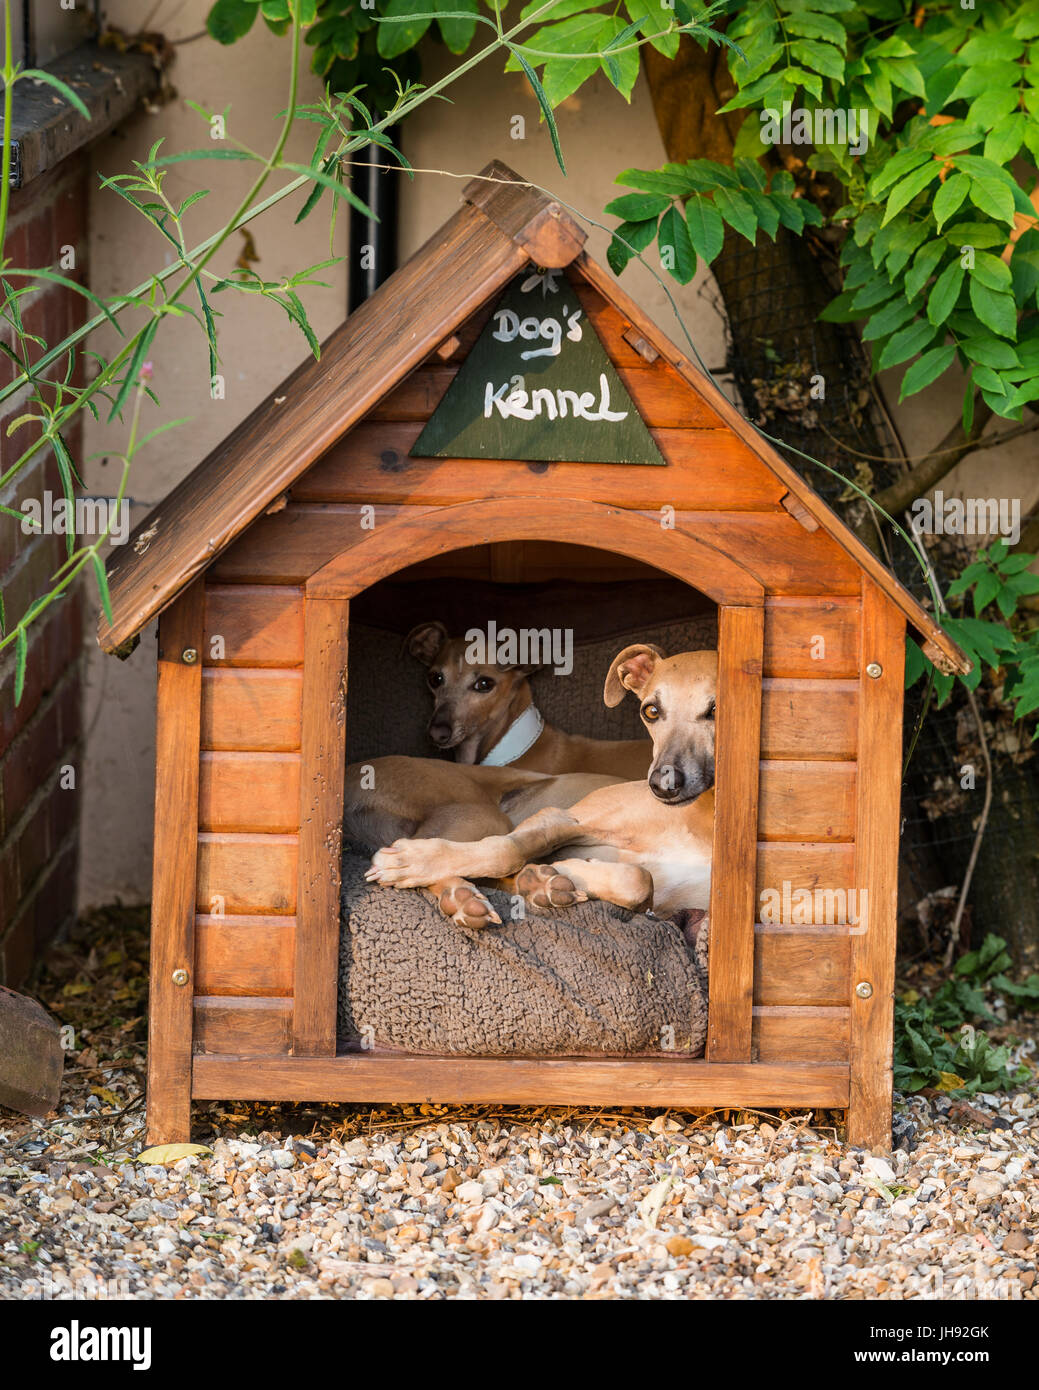 Dogs in wooden kennel - Stock Image